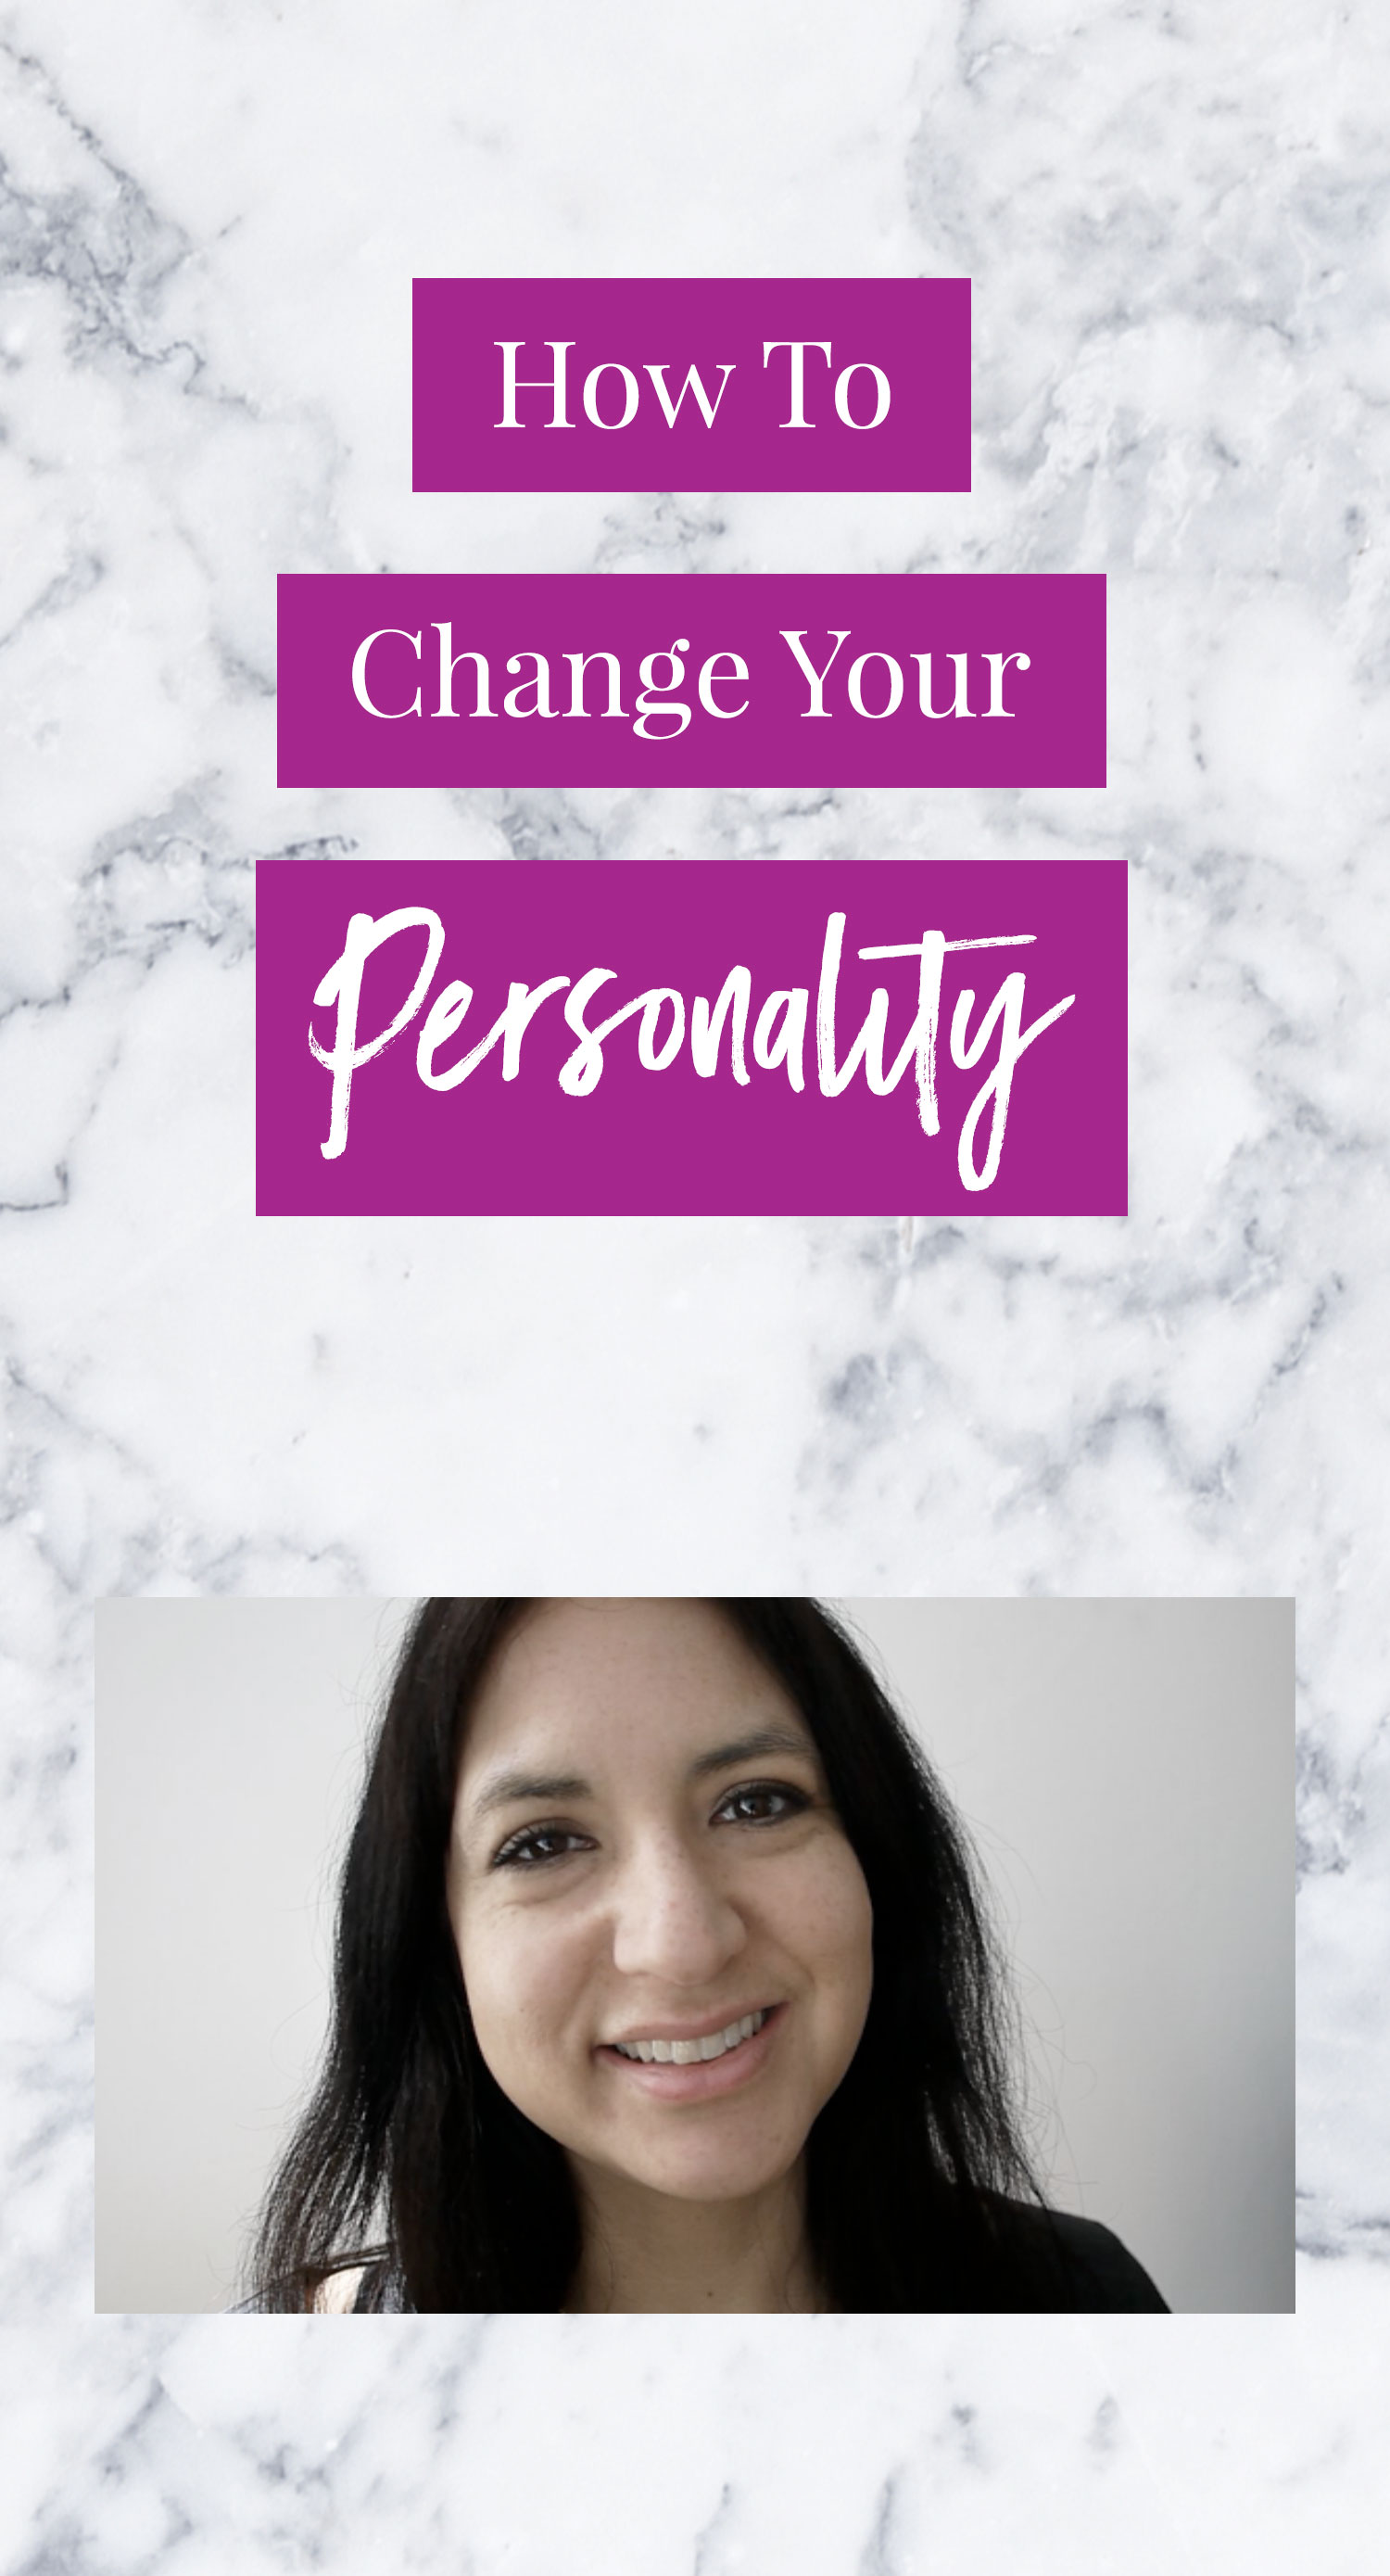 How To Change Your Personality